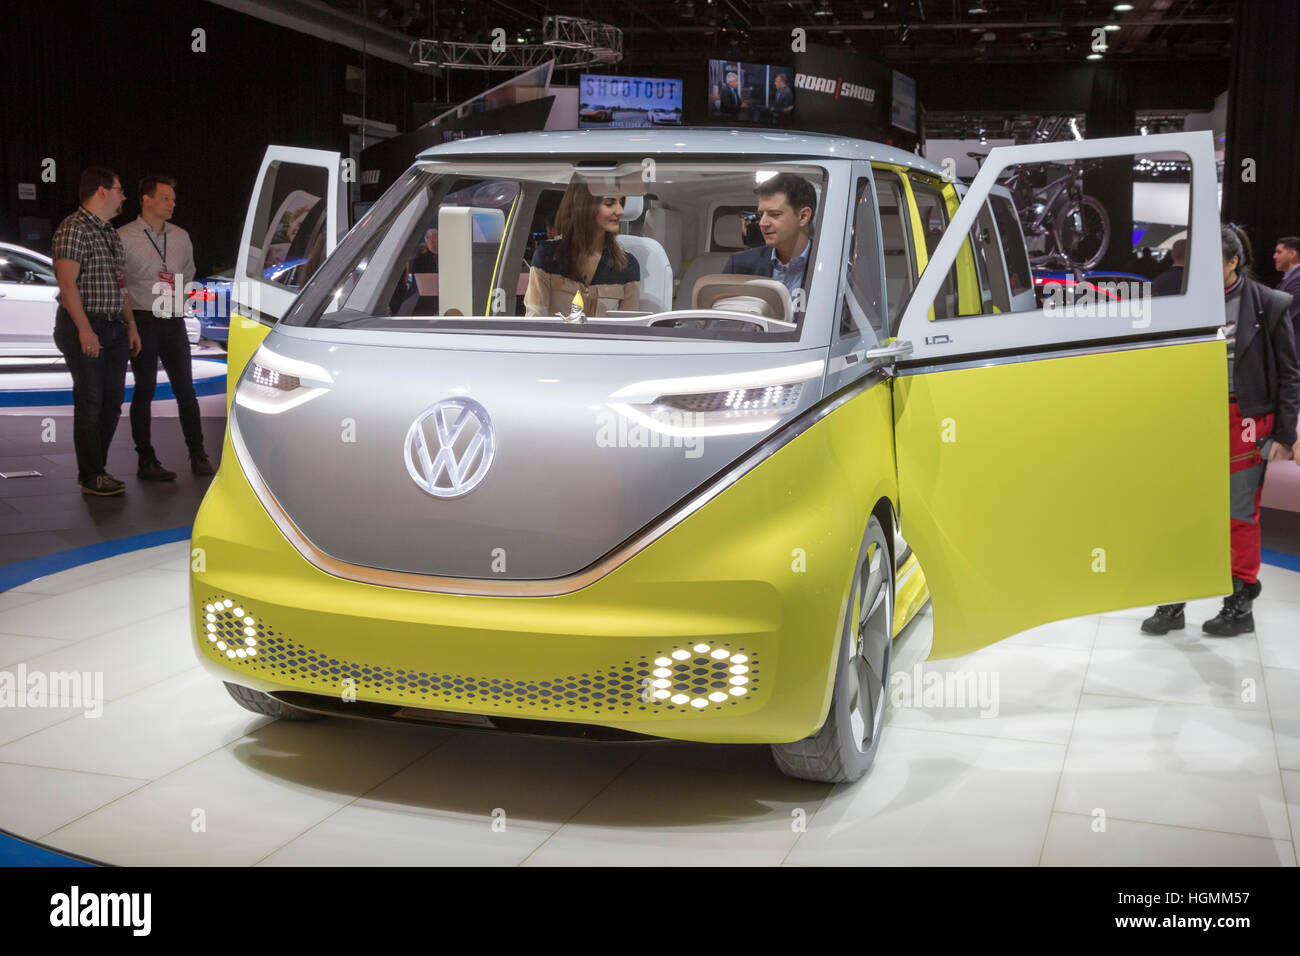 Detroit, Michigan USA - 10 January 2017 - Volkswagen's I.D. Buzz concept vehicle on display at the North American - Stock Image